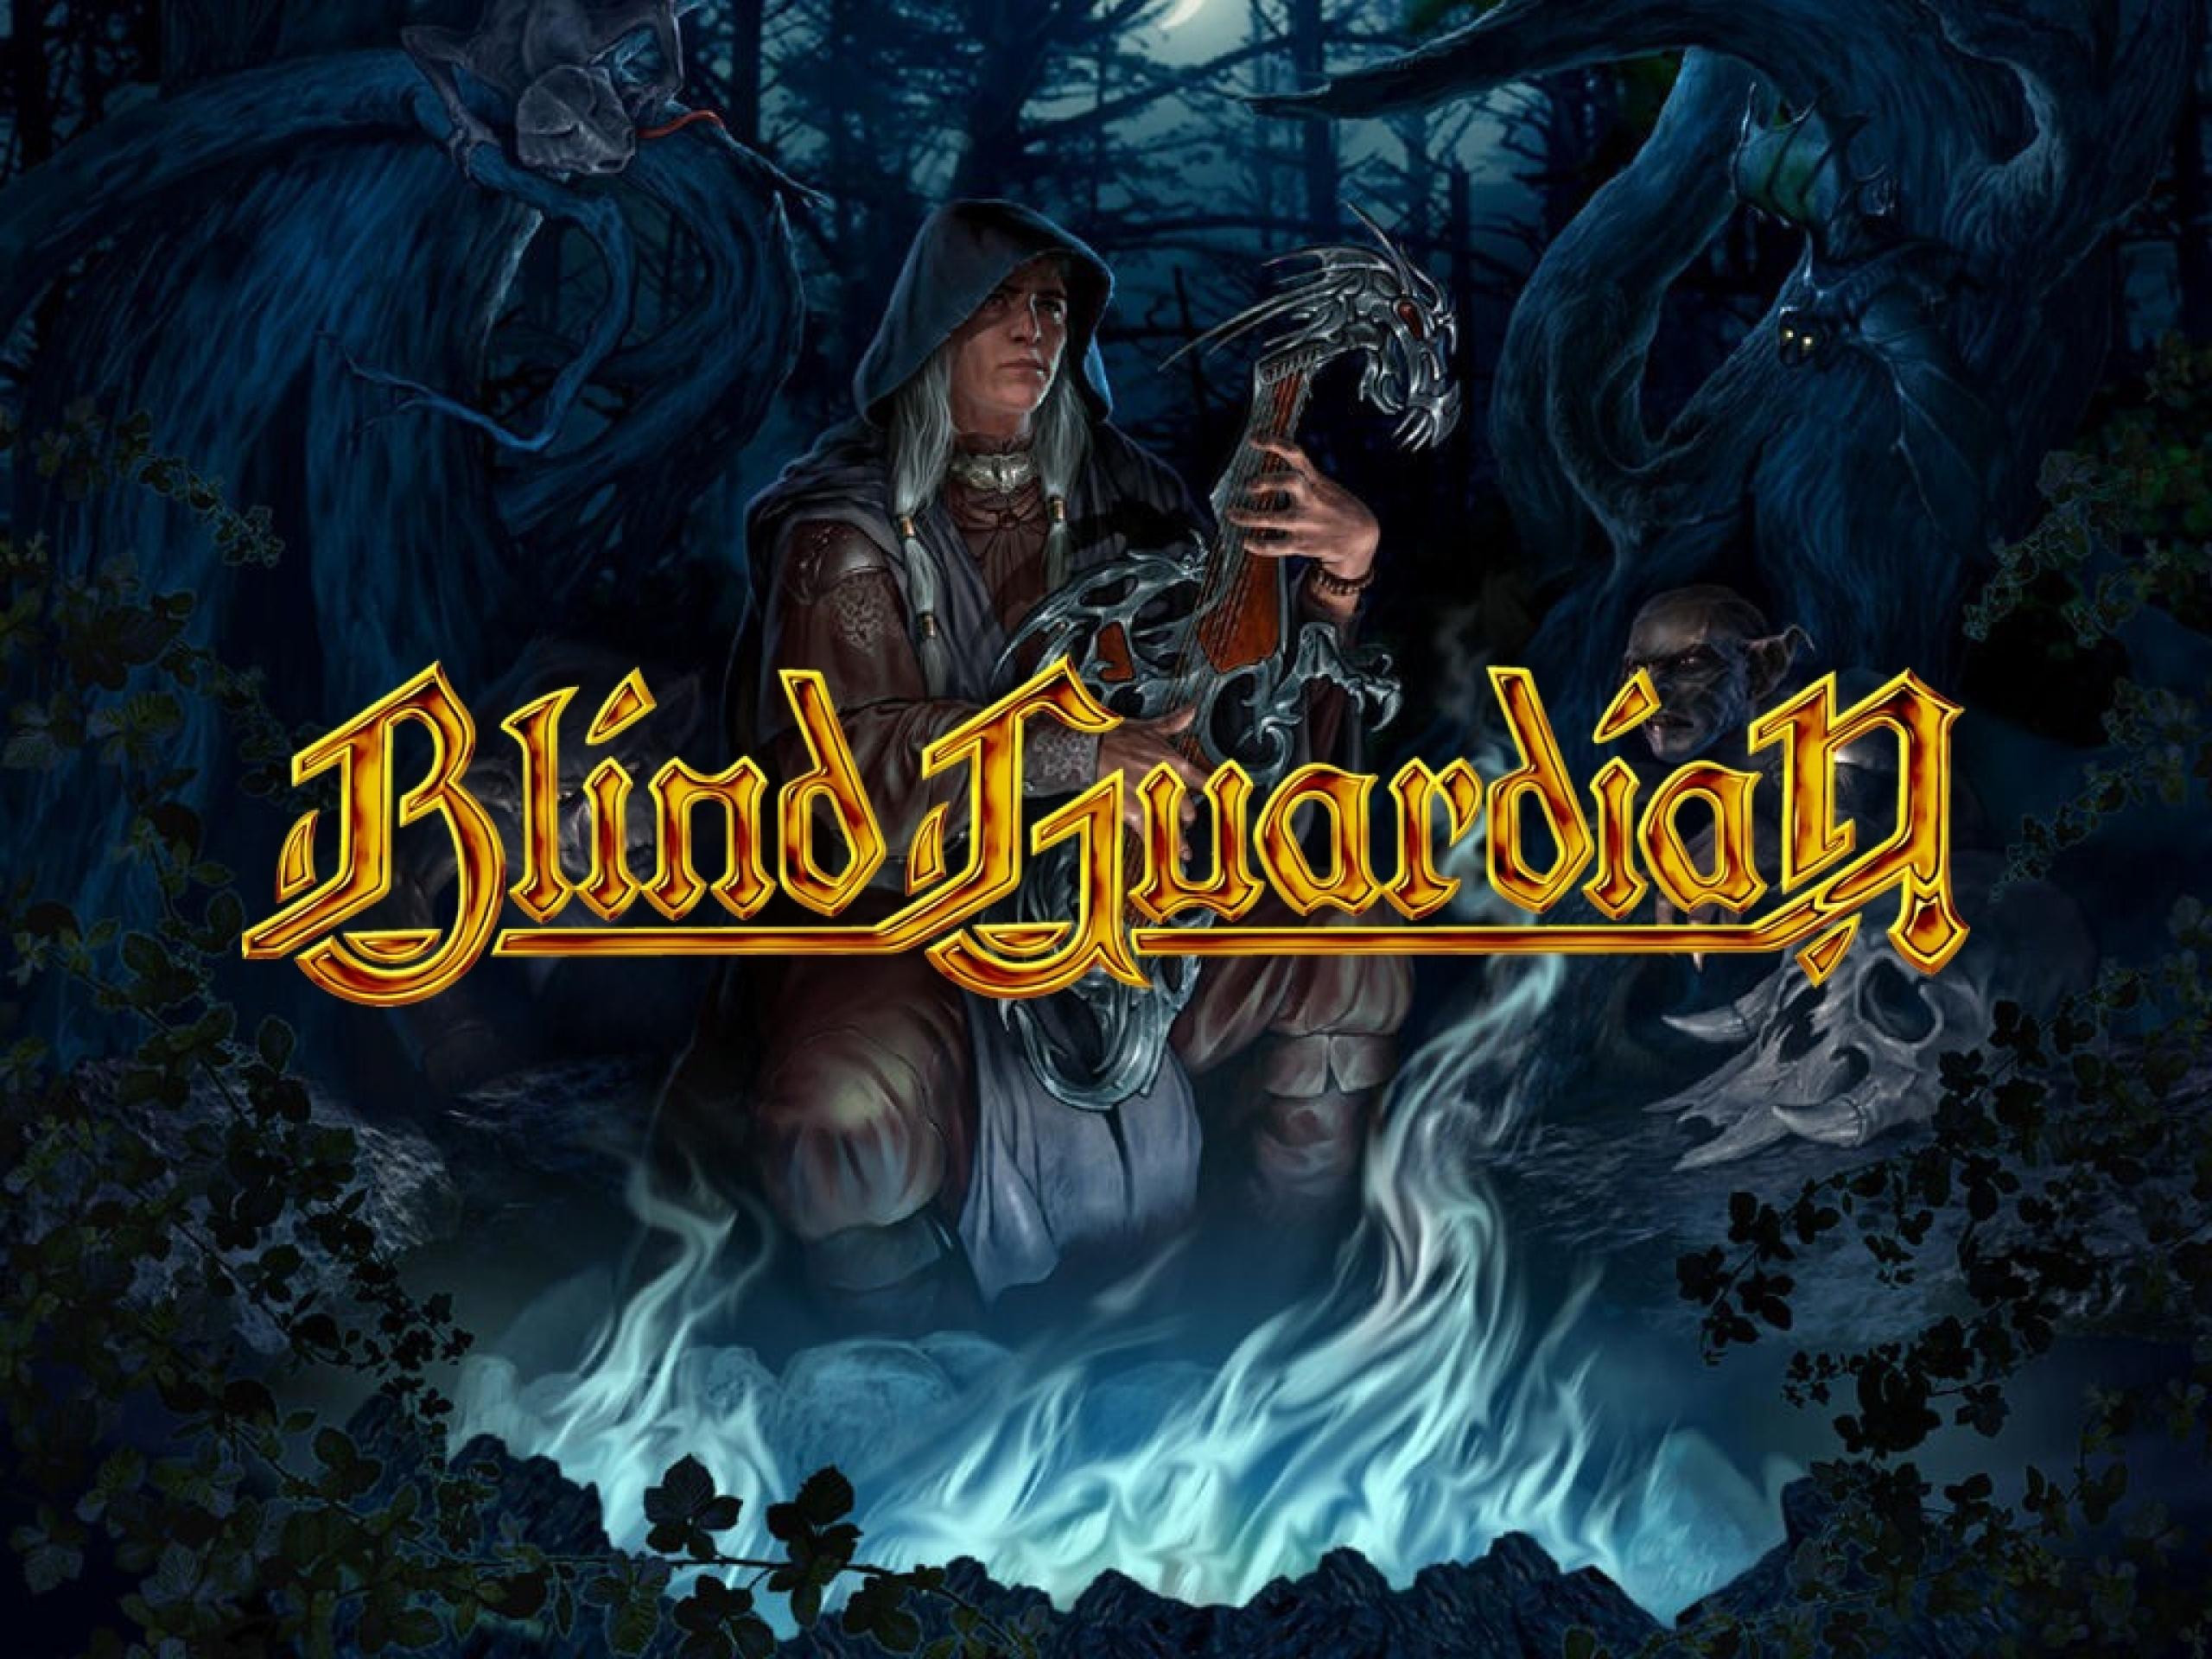 Blind Guardian wallpapers, Music, HQ Blind Guardian pictures